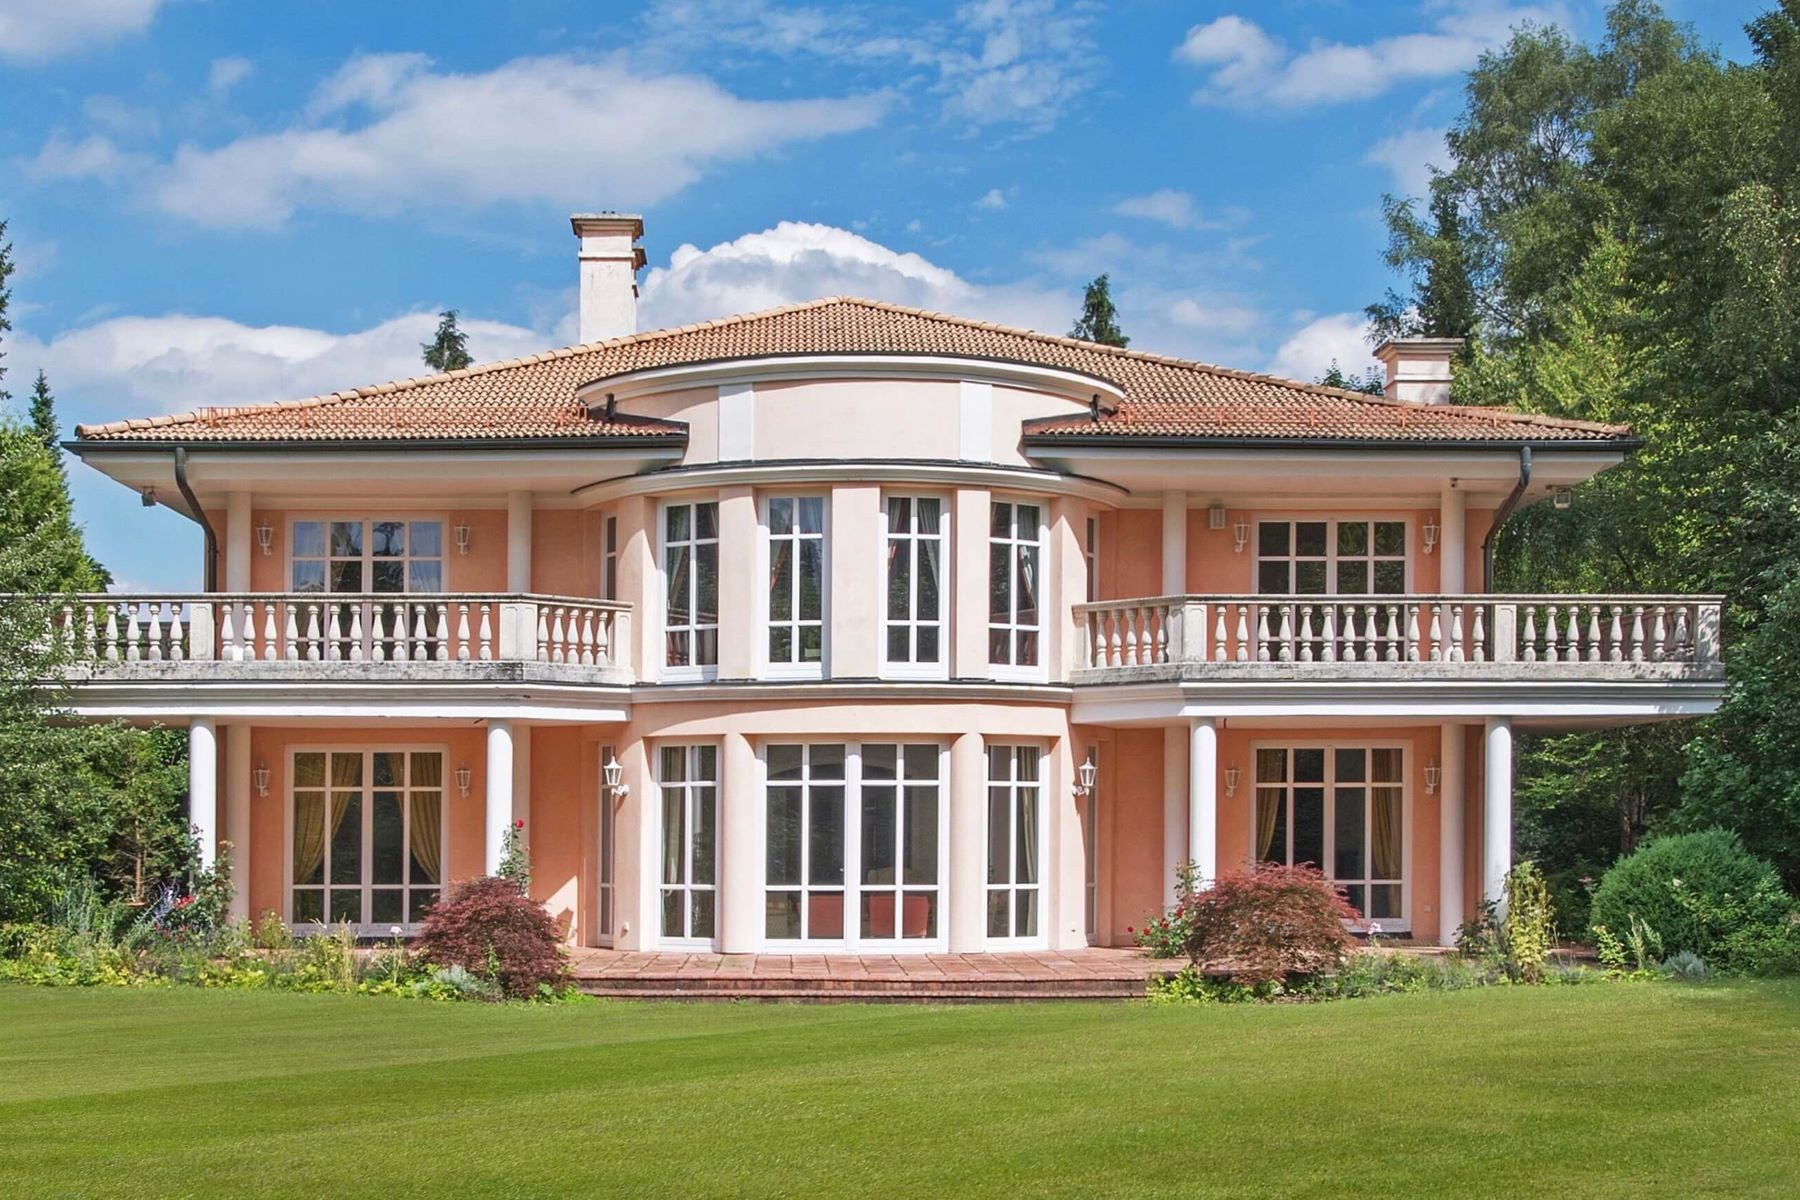 Single Family Home for Sale at Classic Elegance Grunwald, Bavaria, 82031 Germany